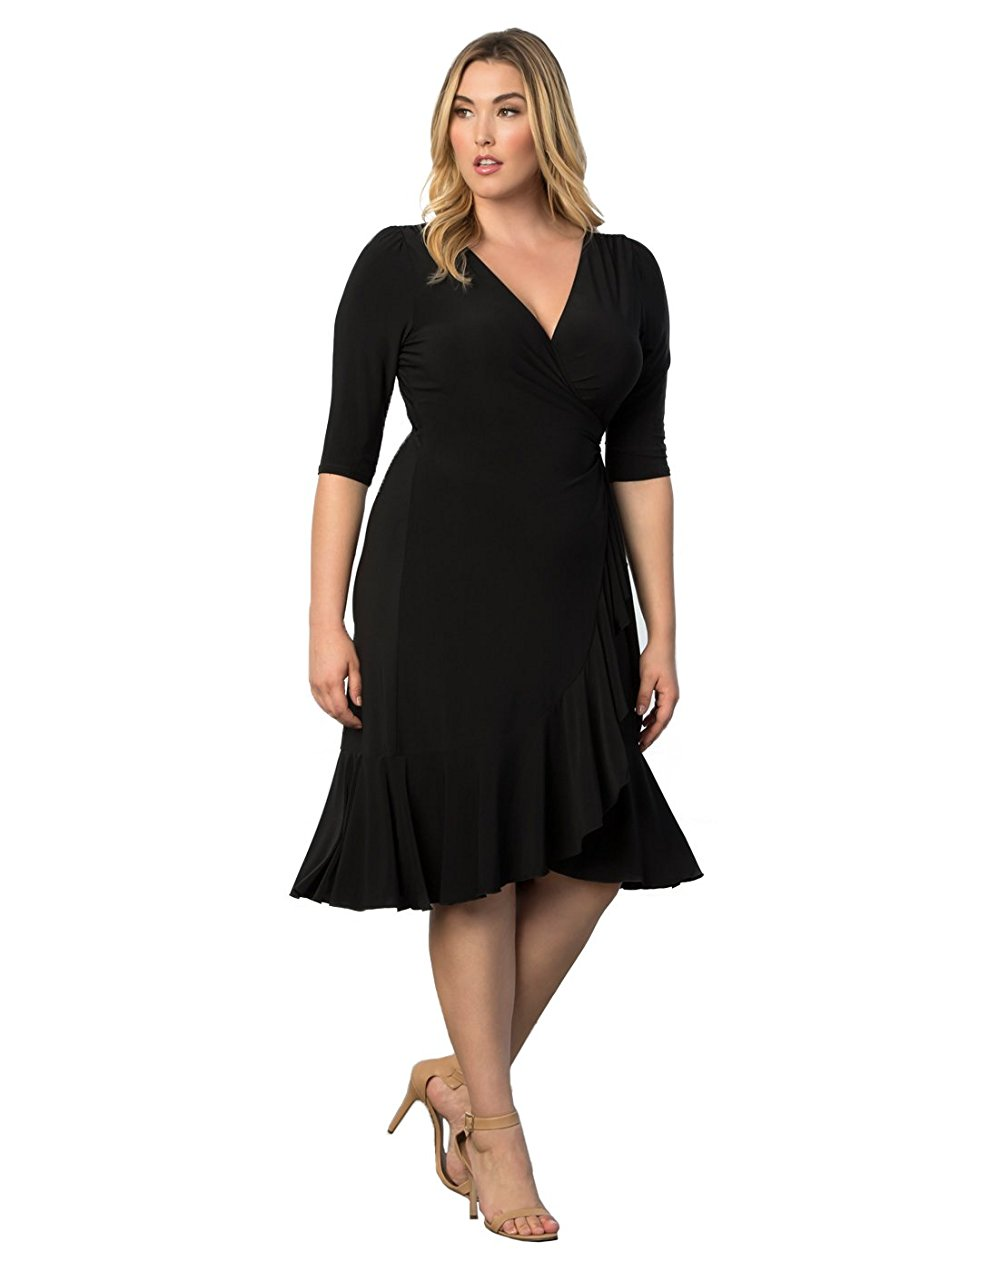 tips for buying plus size holiday dresses 1 - Tips for buying plus-size holiday dresses